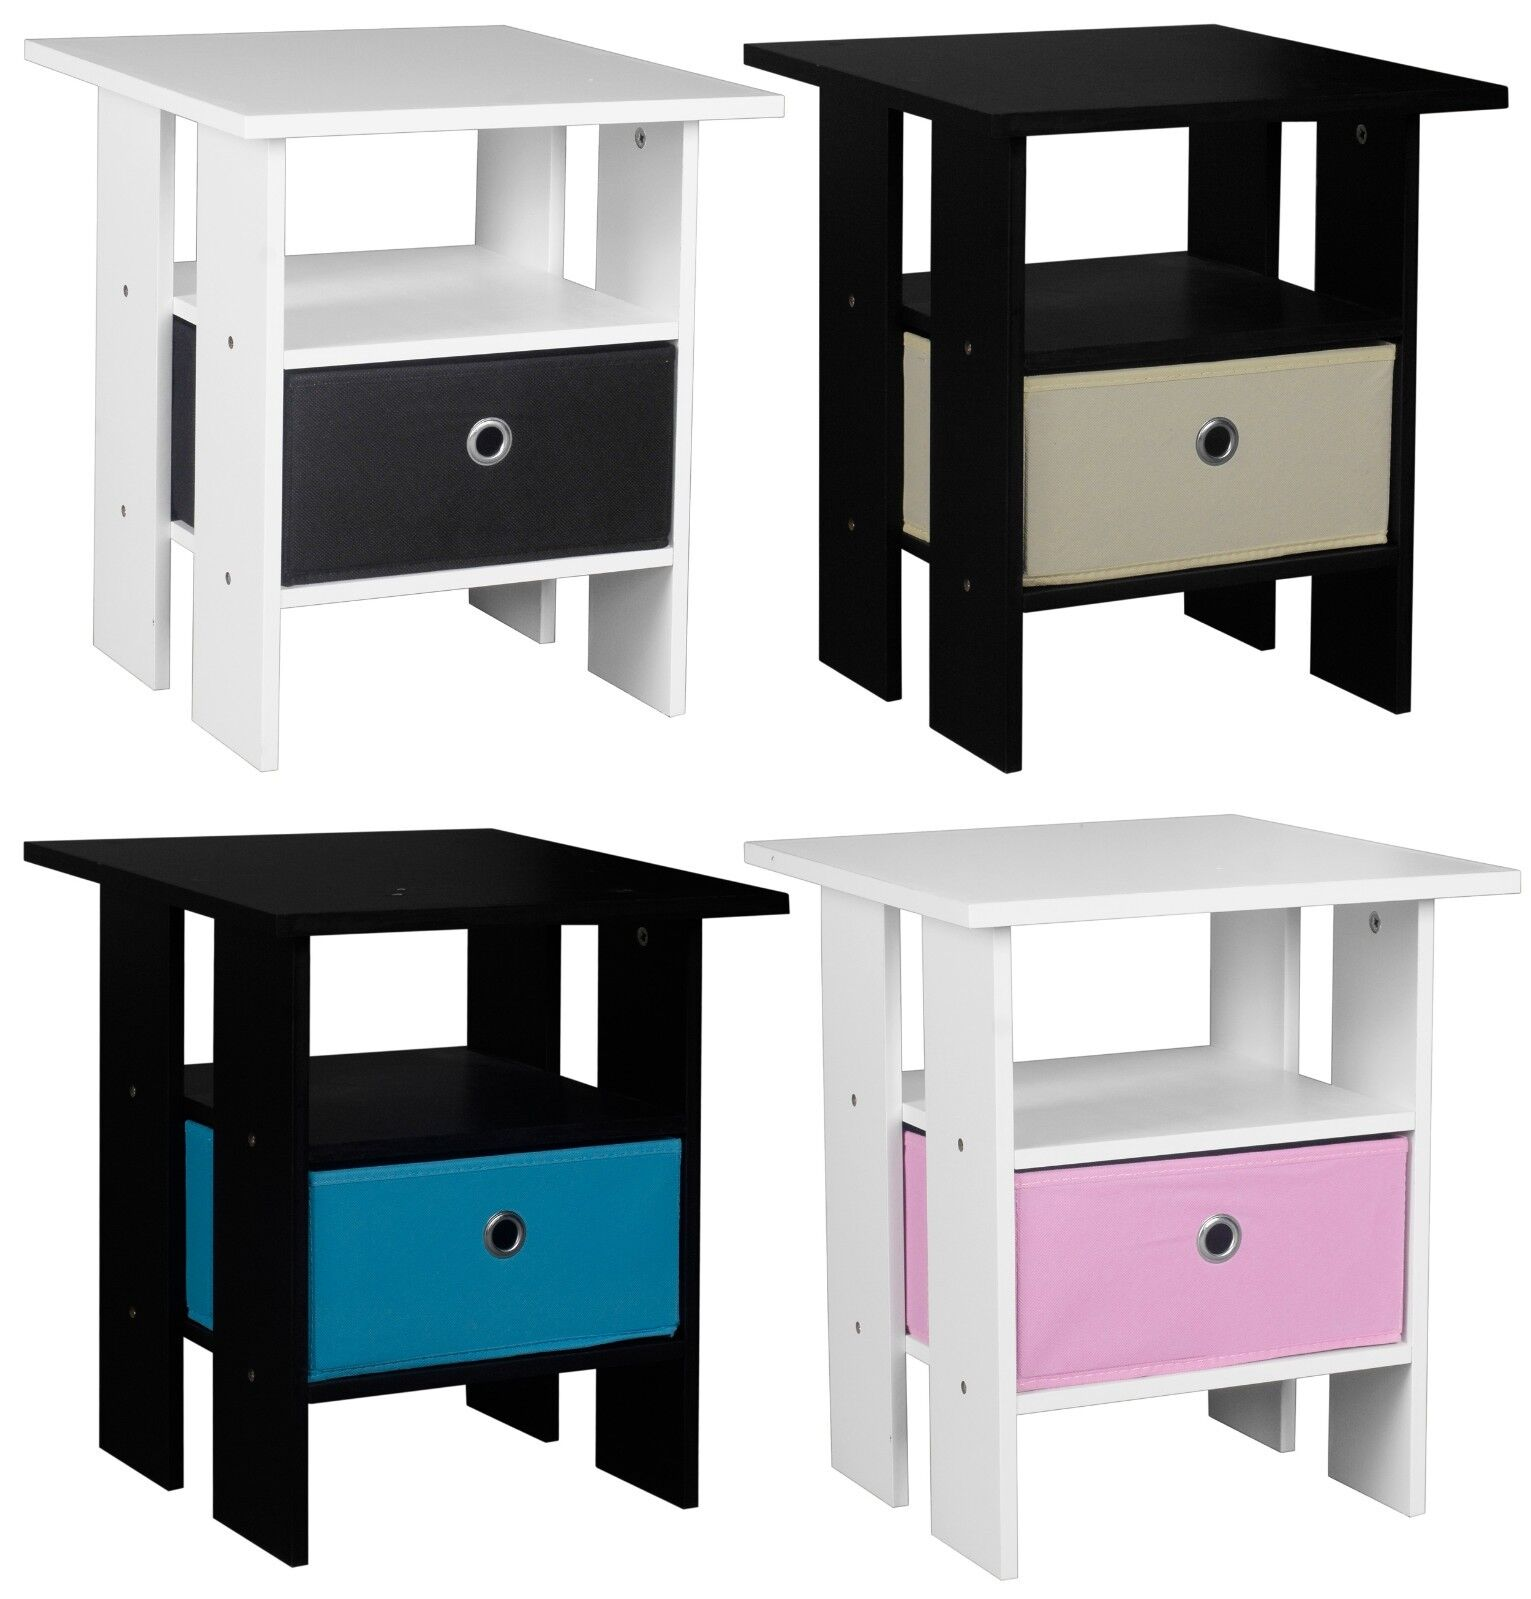 Black 2pcs 1 Drawer 2-Tier Wood Nightstand Cabinet End Table Side Table Bedroom